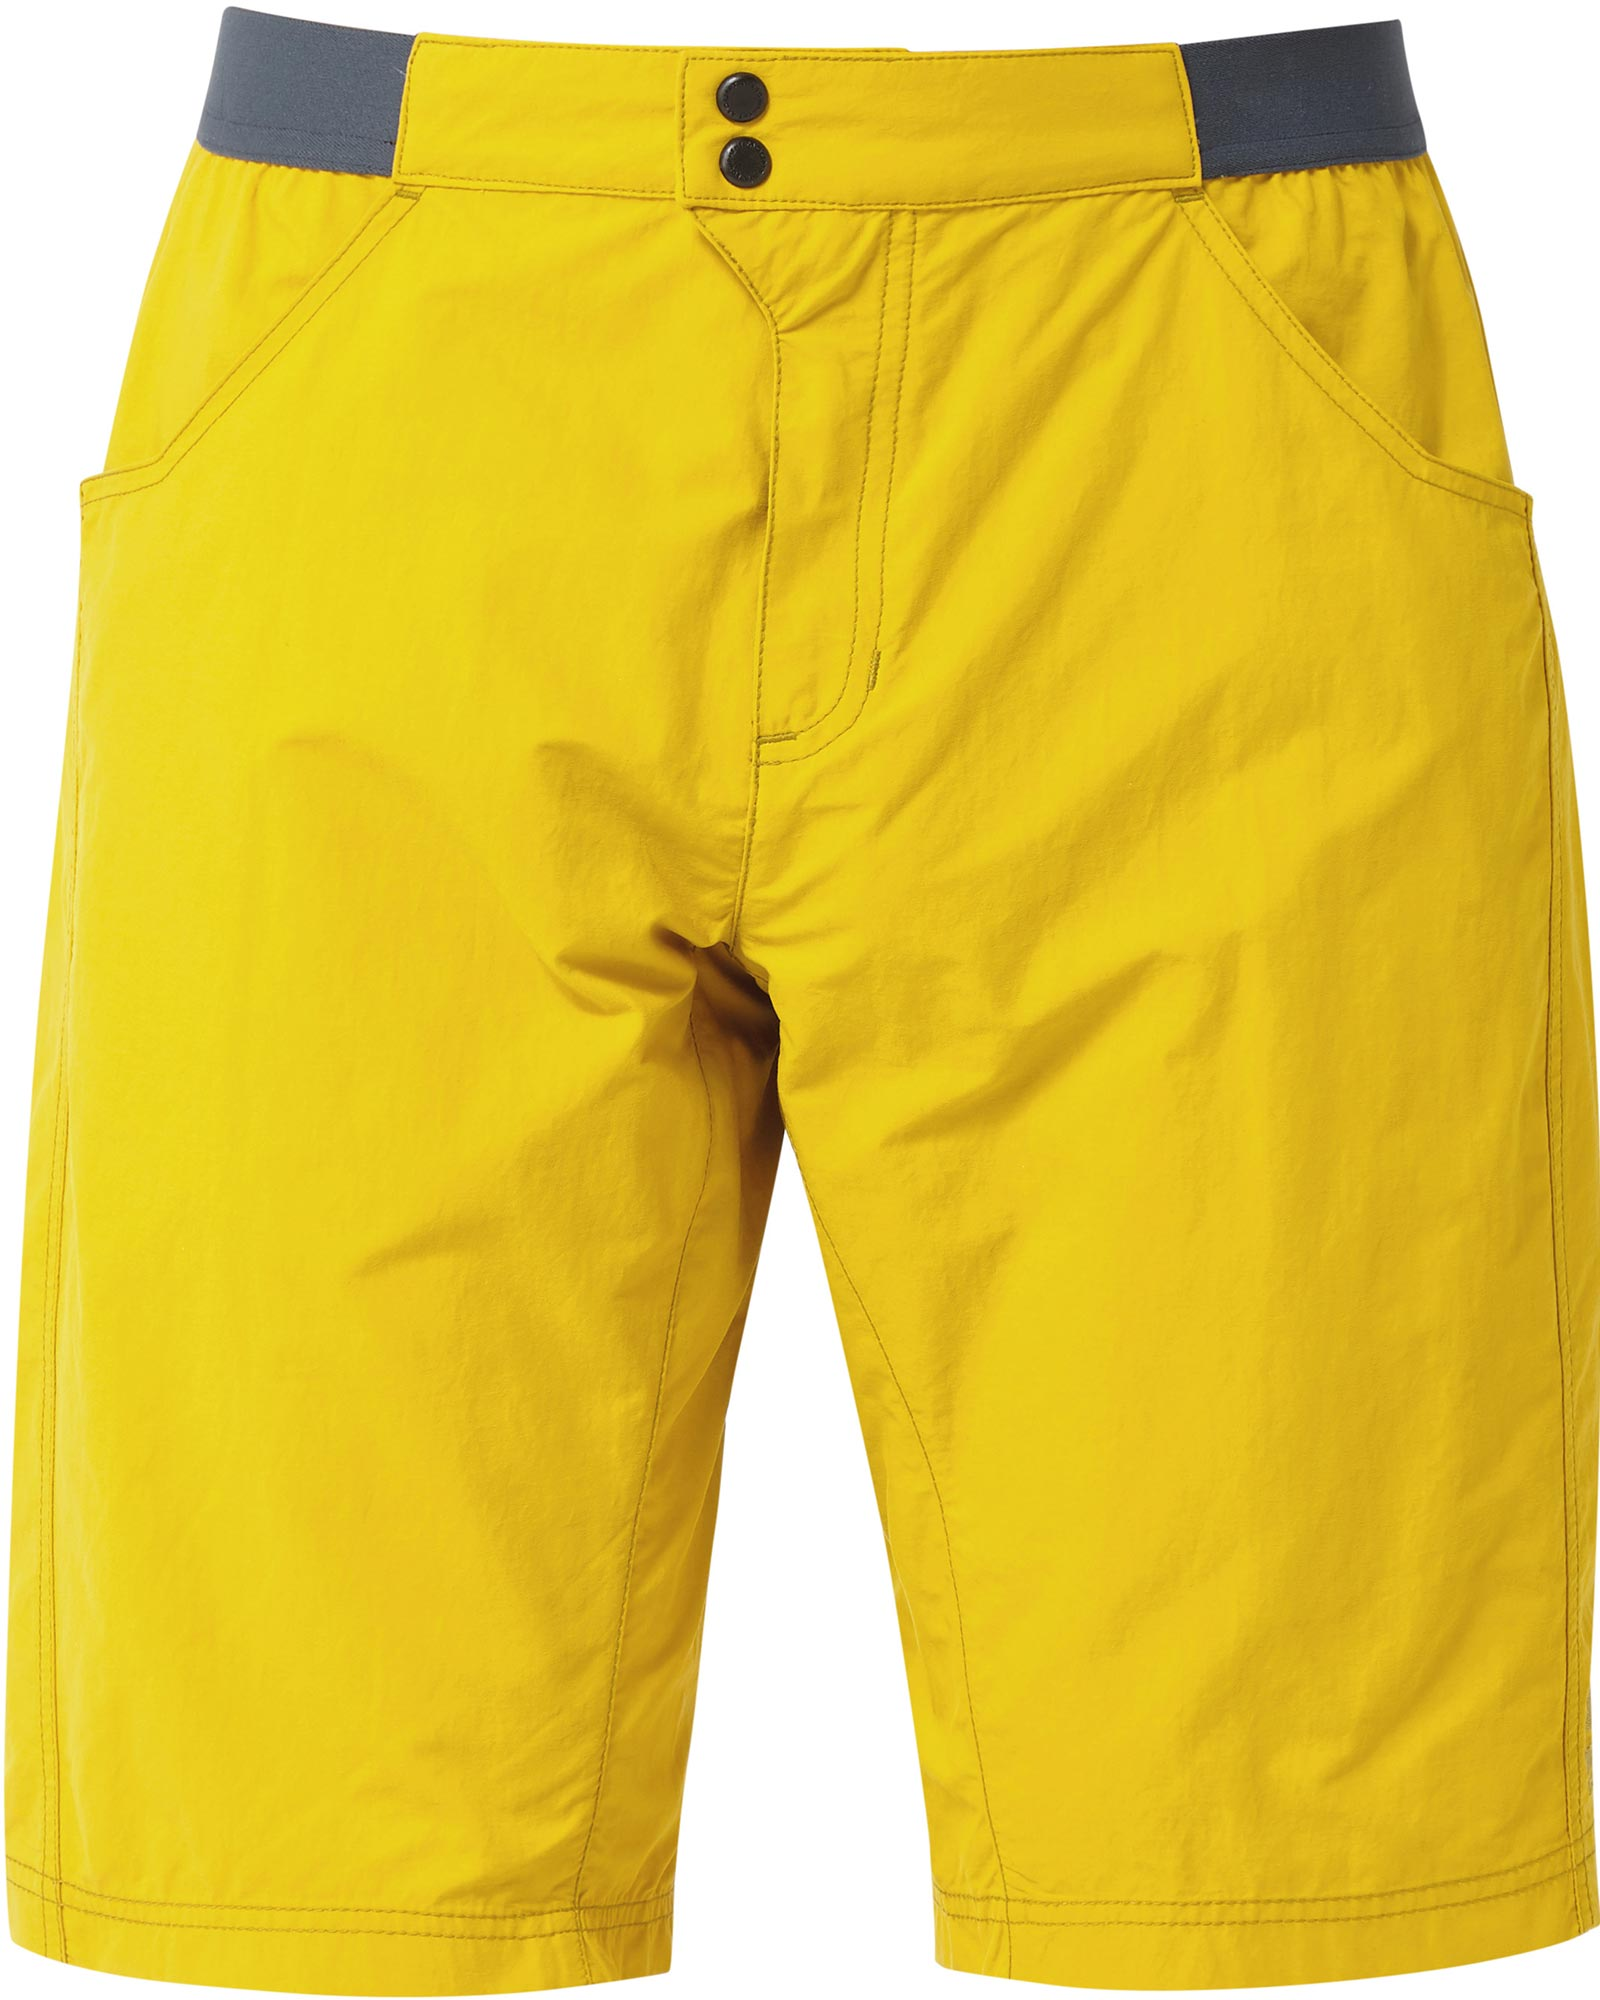 Product image of Mountain equipment Men's Inception Shorts